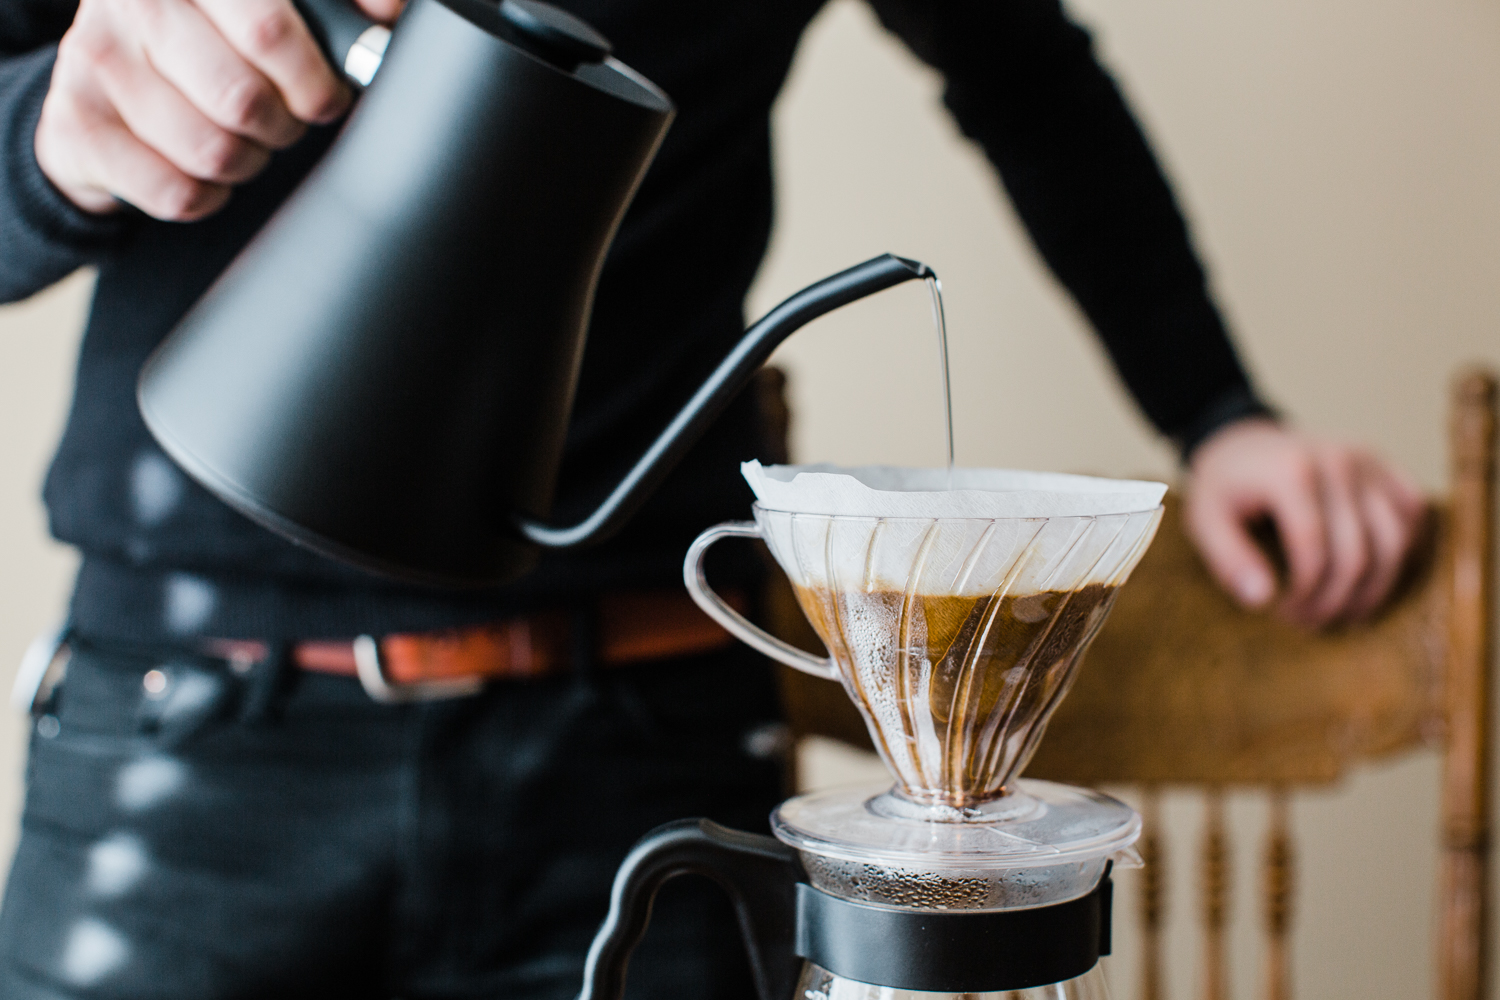 A person brewing coffee with a plastic, size 2 V60, using a tabbed filter, as well as a size 03 glass Hario carafe and a matte black Fellow Stagg.